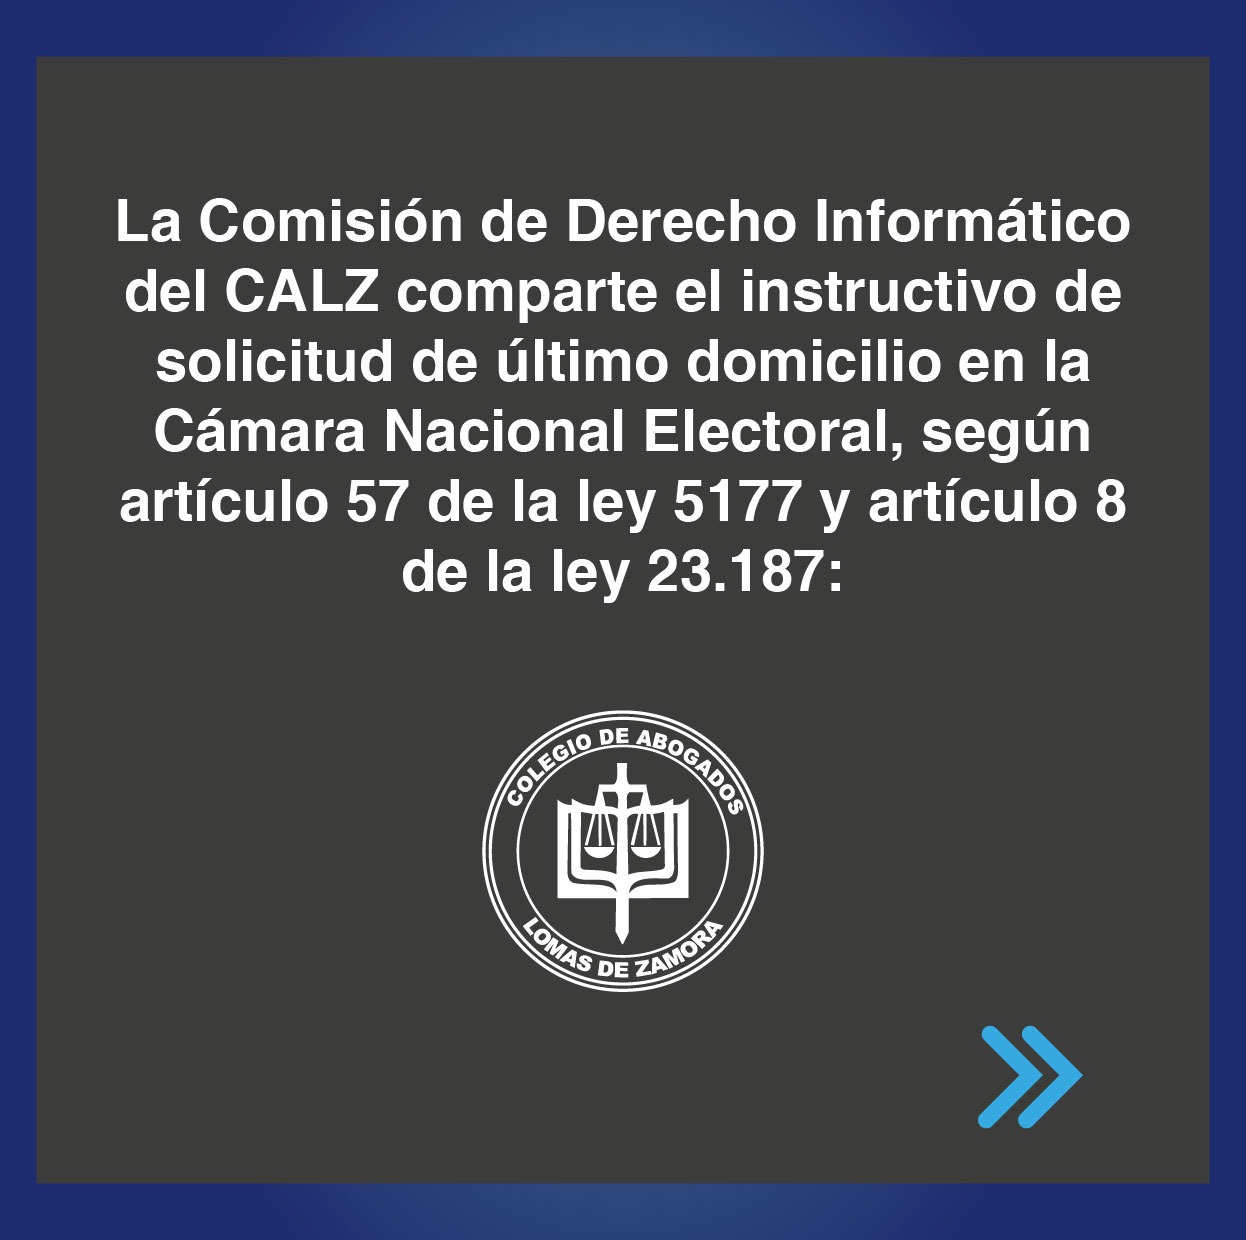 Instructivo de solicitud de último domicilio